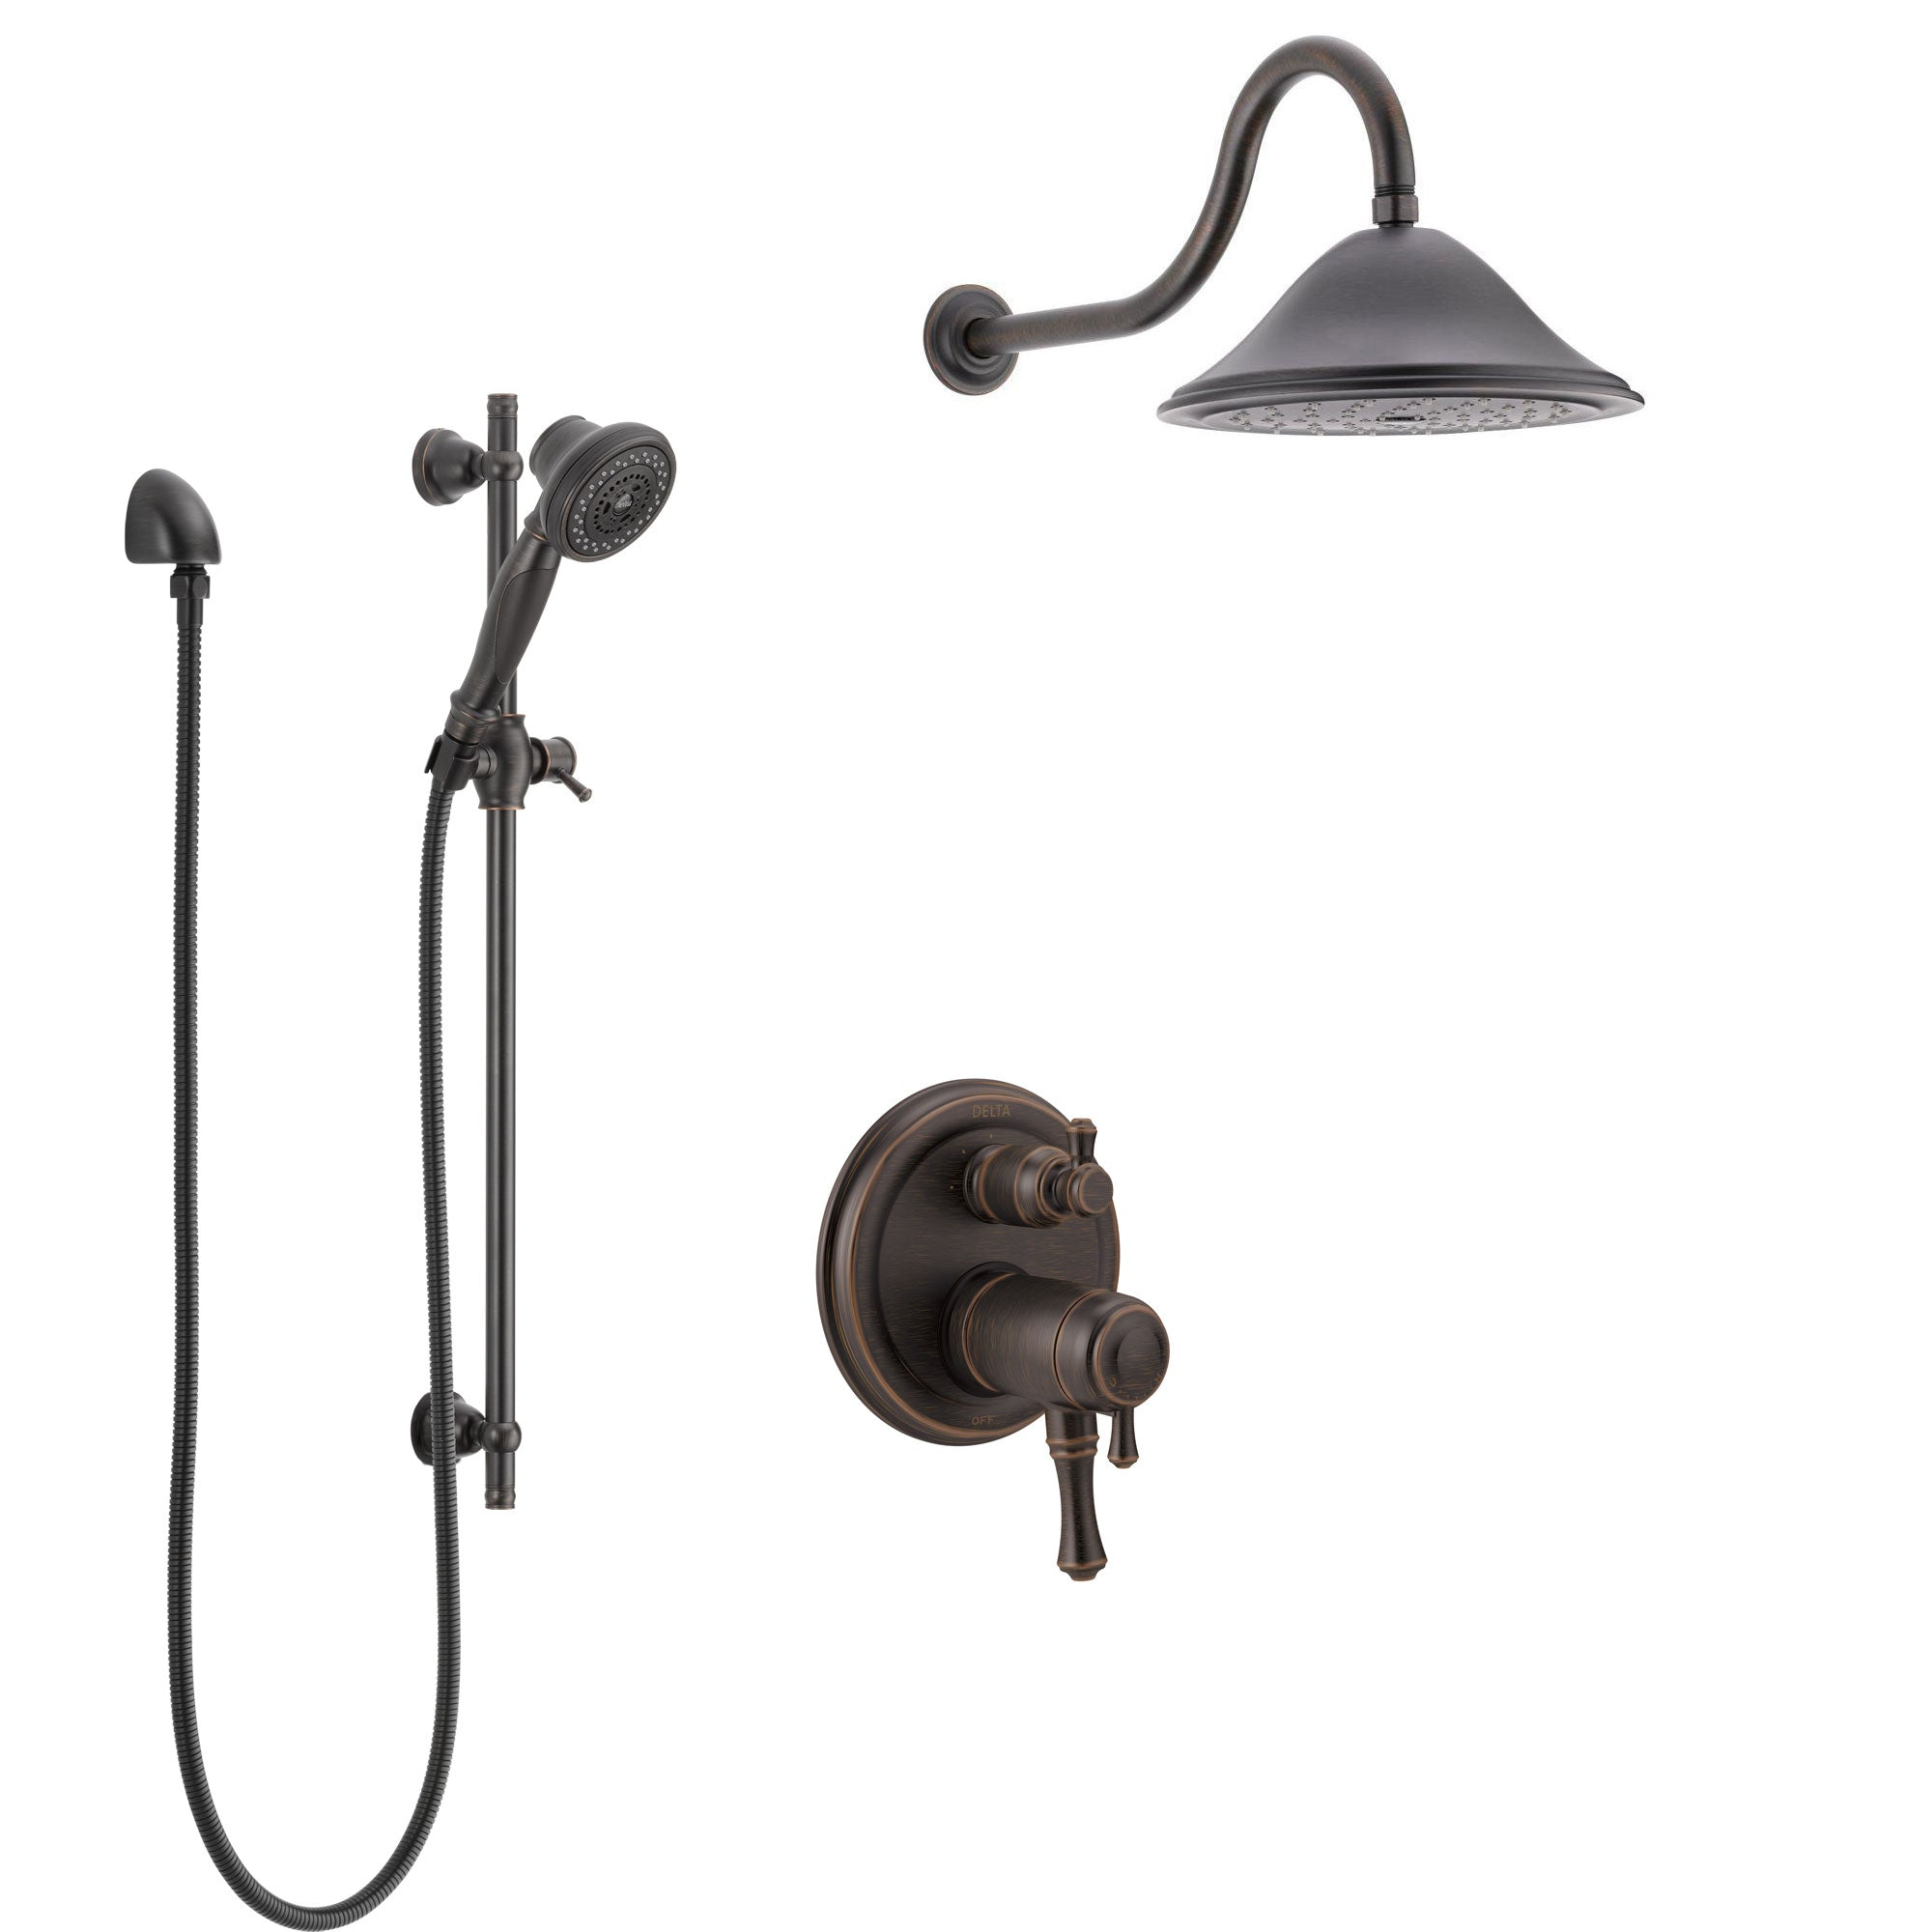 Delta Cassidy Venetian Bronze Shower System with Dual Thermostatic Control Handle, Integrated Diverter, Showerhead, and Hand Shower SS27T897RB11